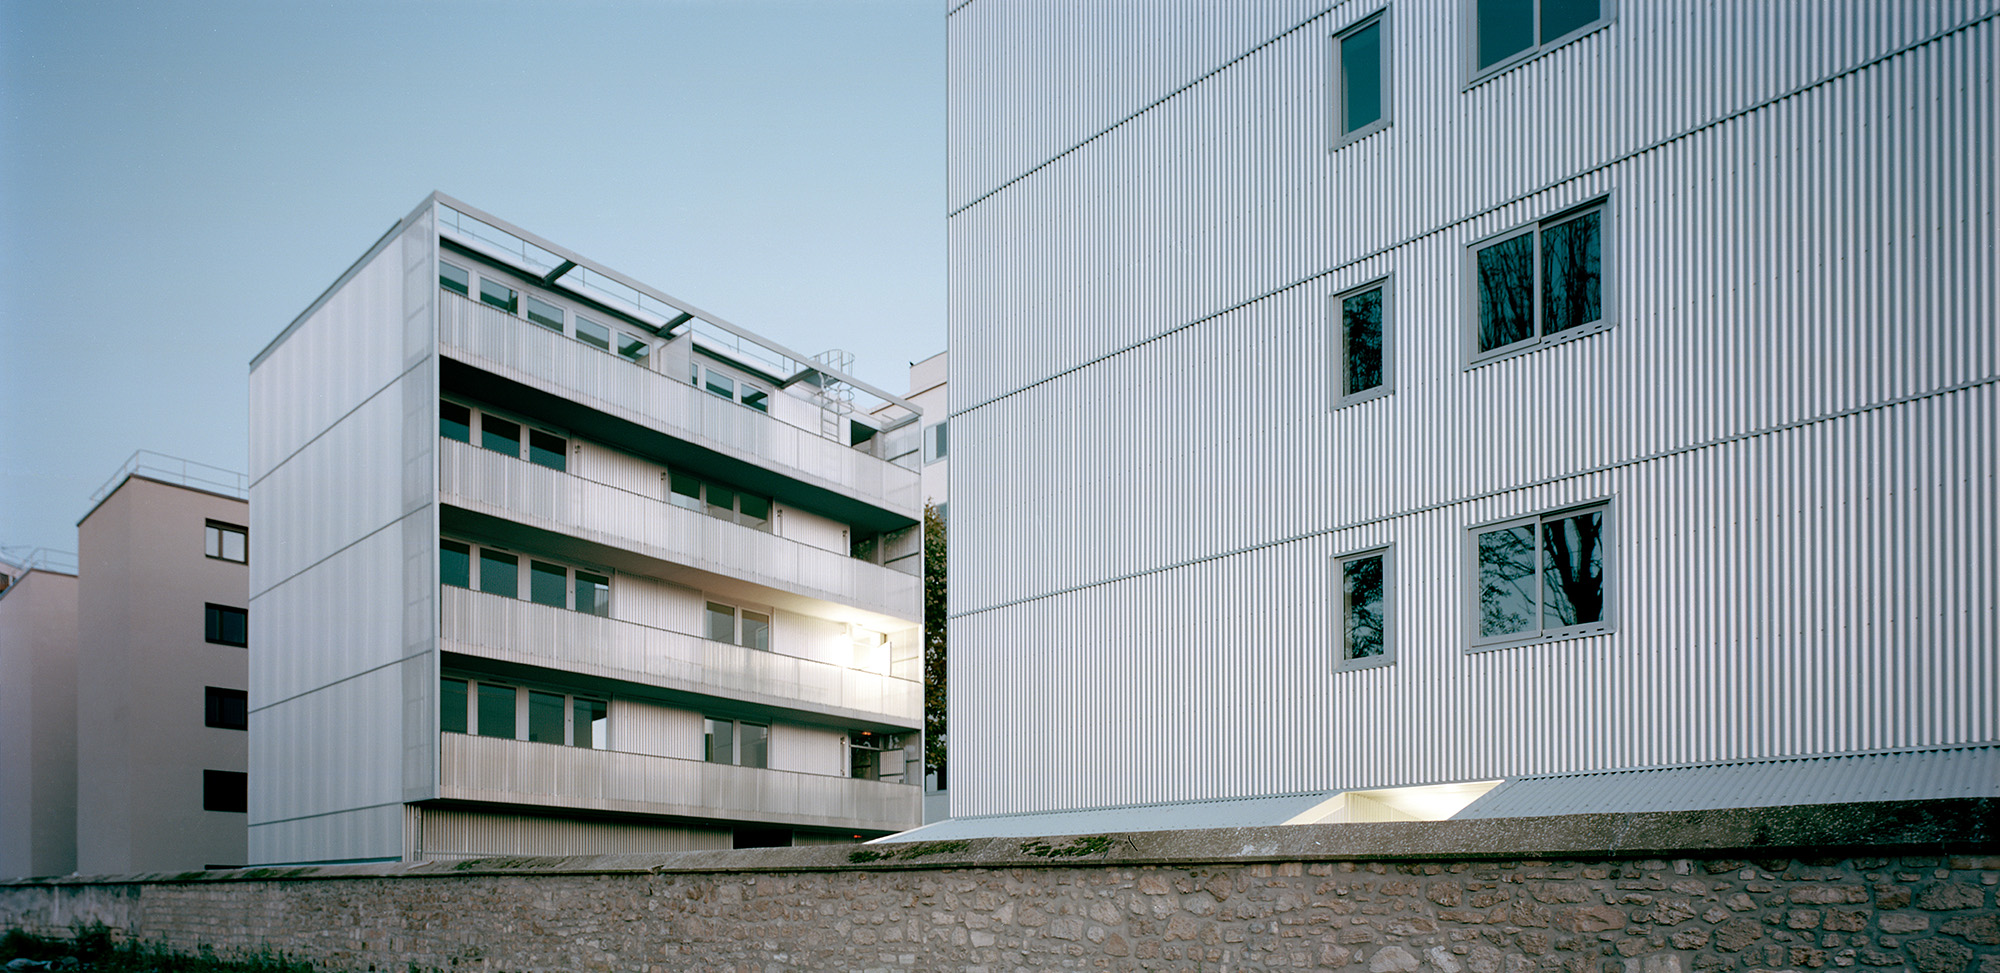 COLLECTIVE HOUSING UNITS - REBIERE